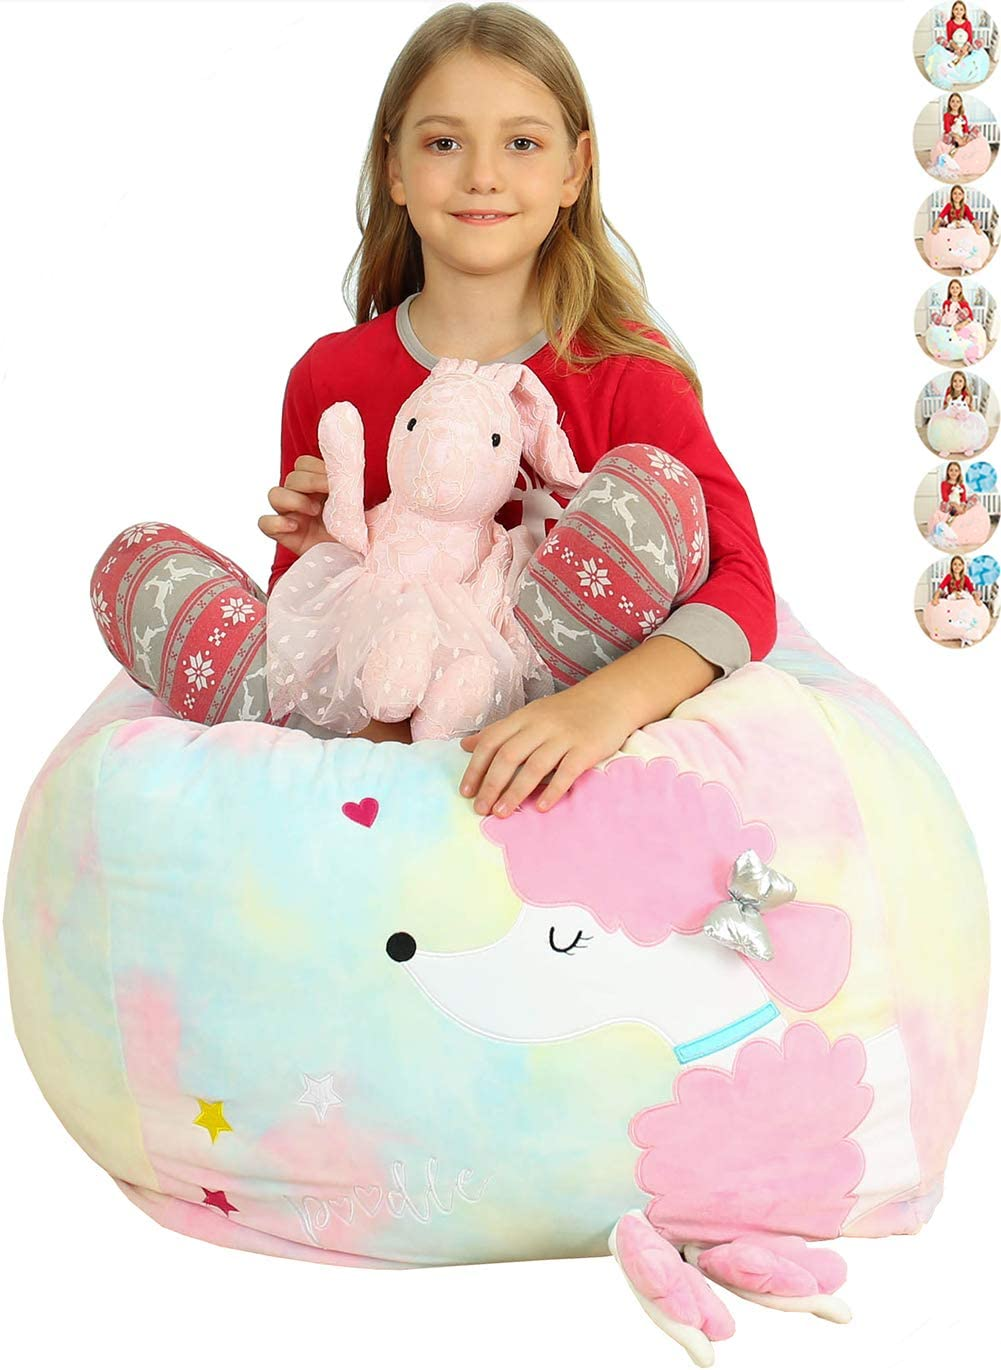 """Anzitinlan Kids Bean Bag Chair Girls, Stuffed Animal Storage for Kids Room, Kids Chairs, Baby Fleece Fabric Super Soft, Cover Only, 22""""x24"""" Extra Large Colorful Poodle"""